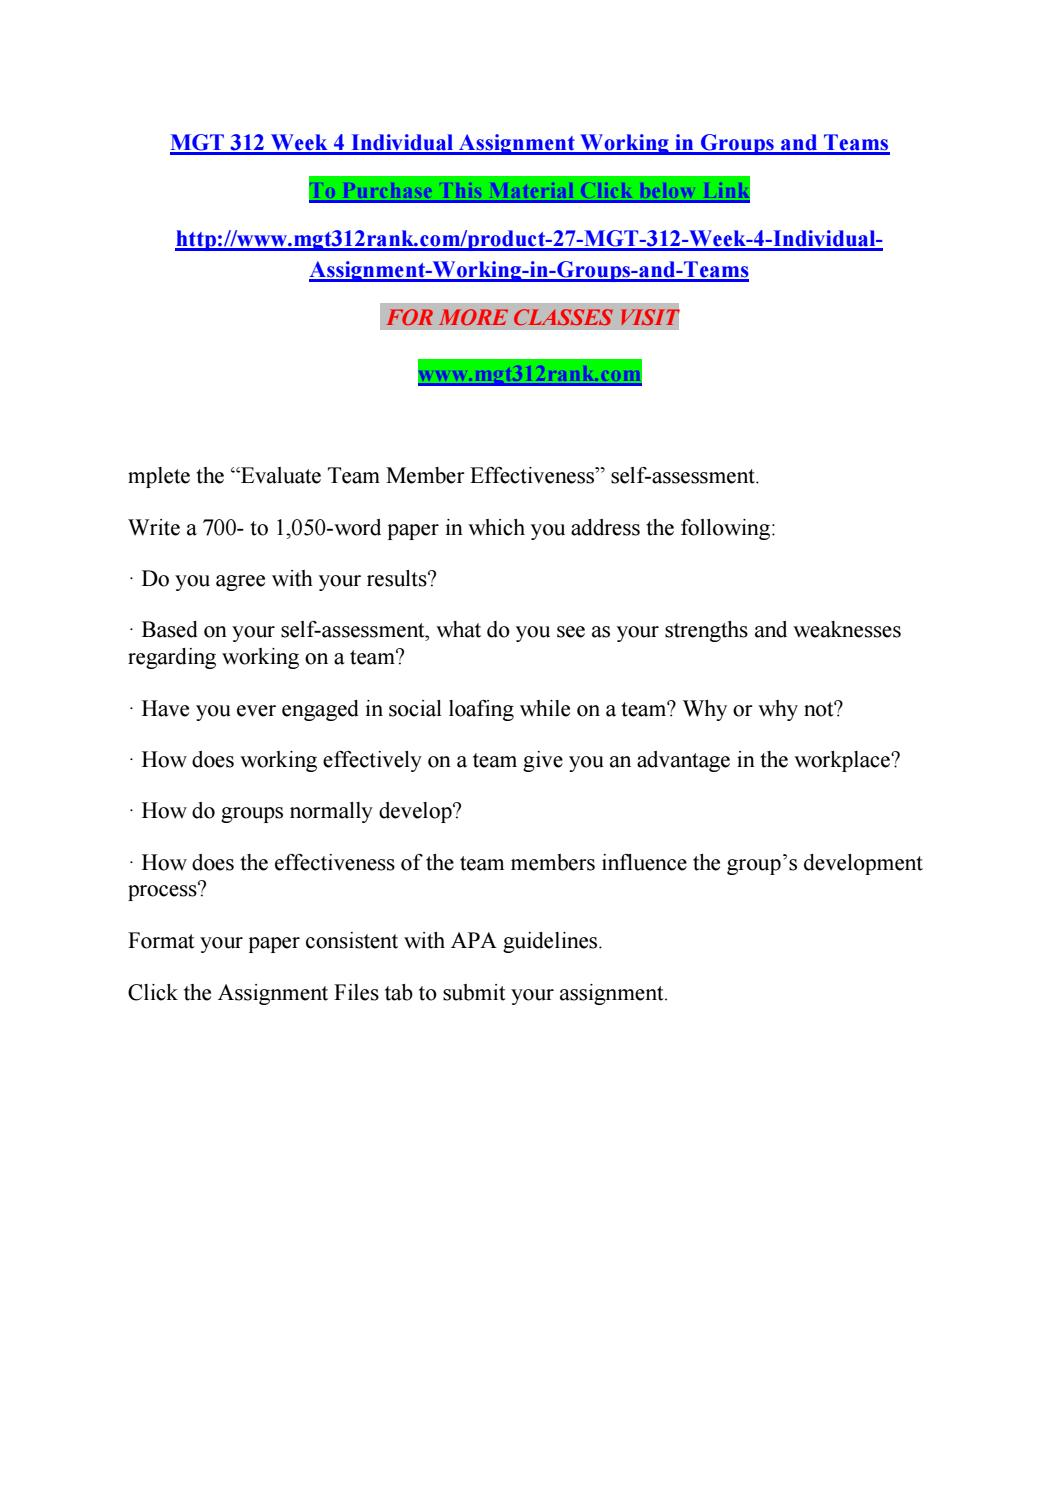 006 Word Essay Example Page 1 Rare 200 About Myself Sample Full